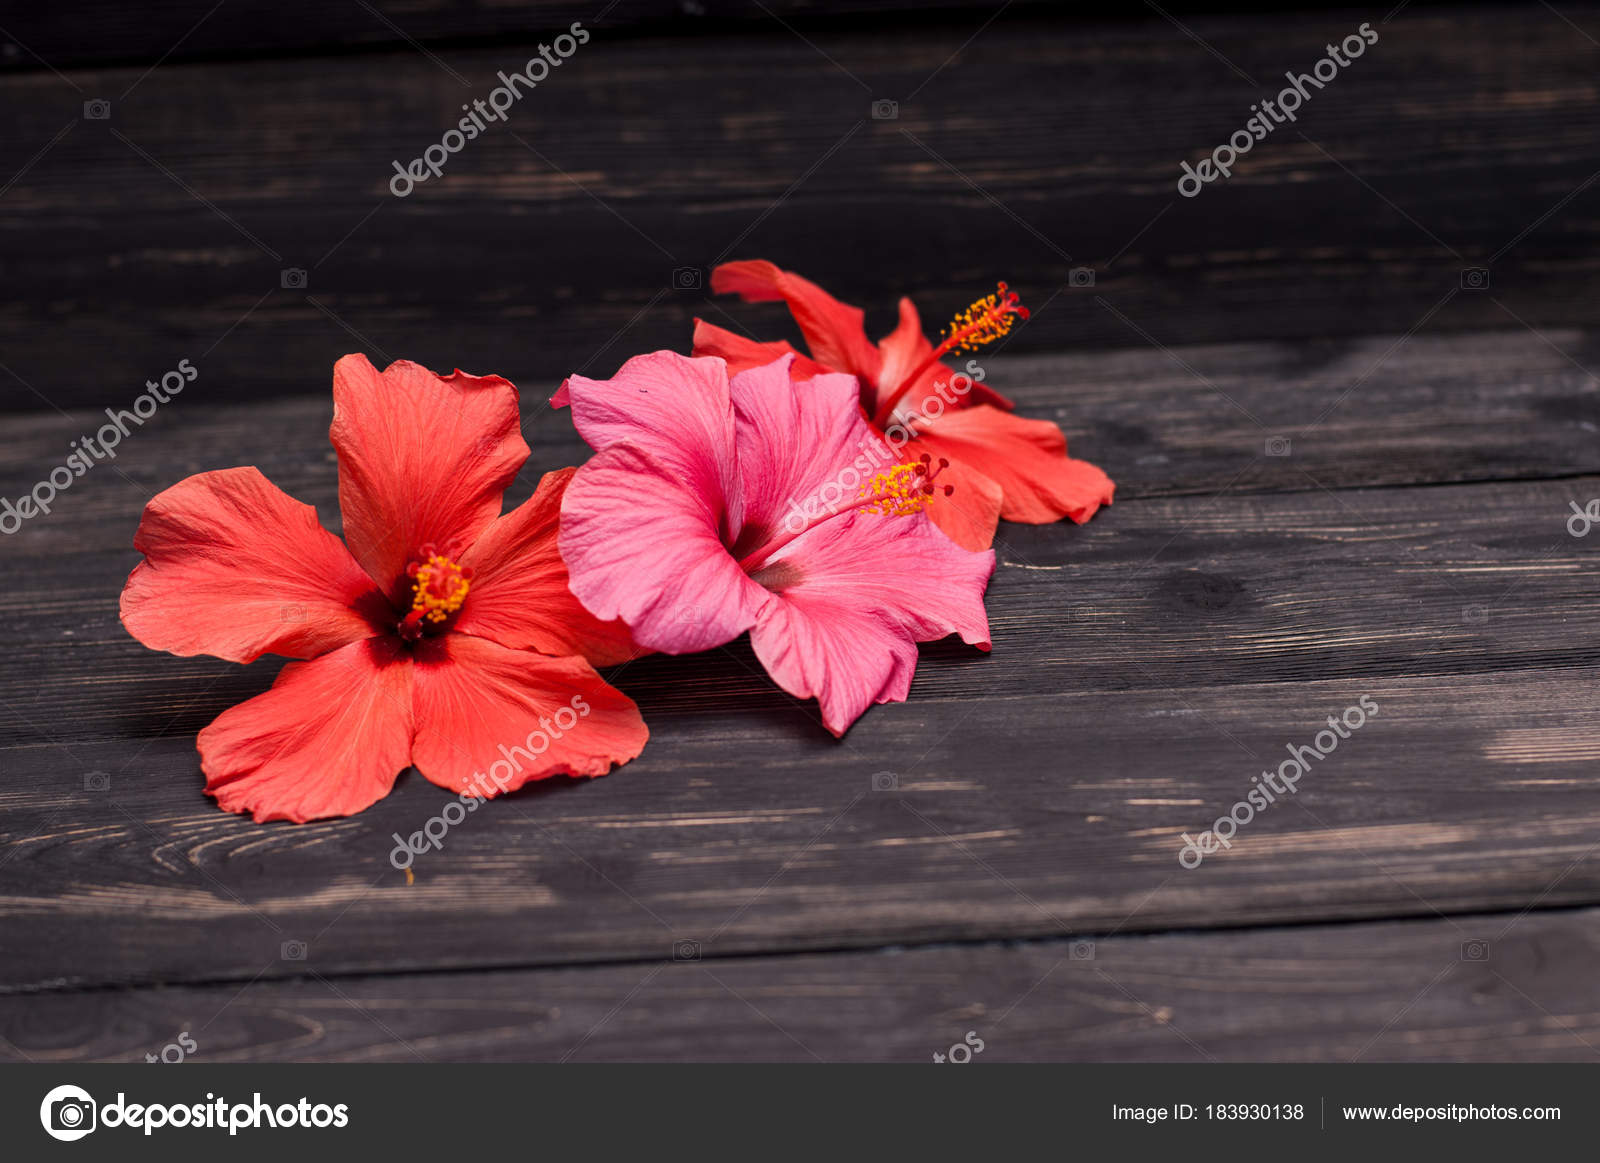 Hibiscus flowers black boards stock photo foras05 183930138 hibiscus flowers black boards stock photo izmirmasajfo